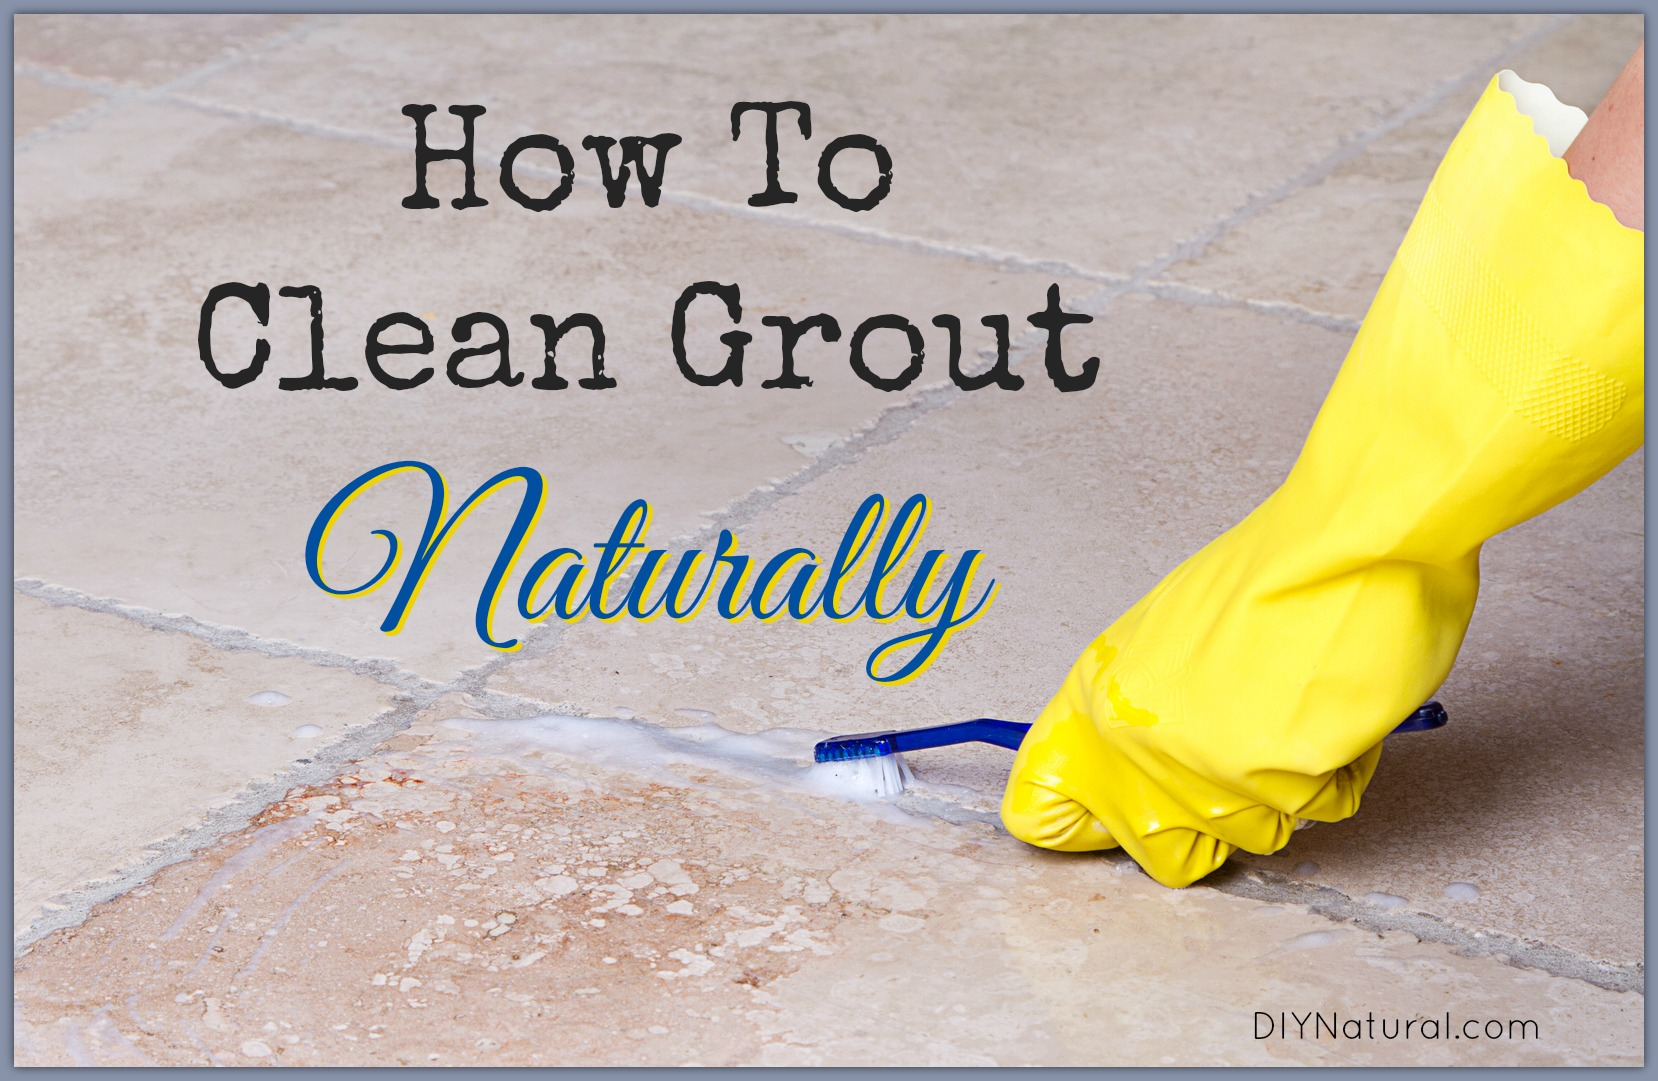 How To Clean Grout A Natural Diy Grout Cleaner That Works